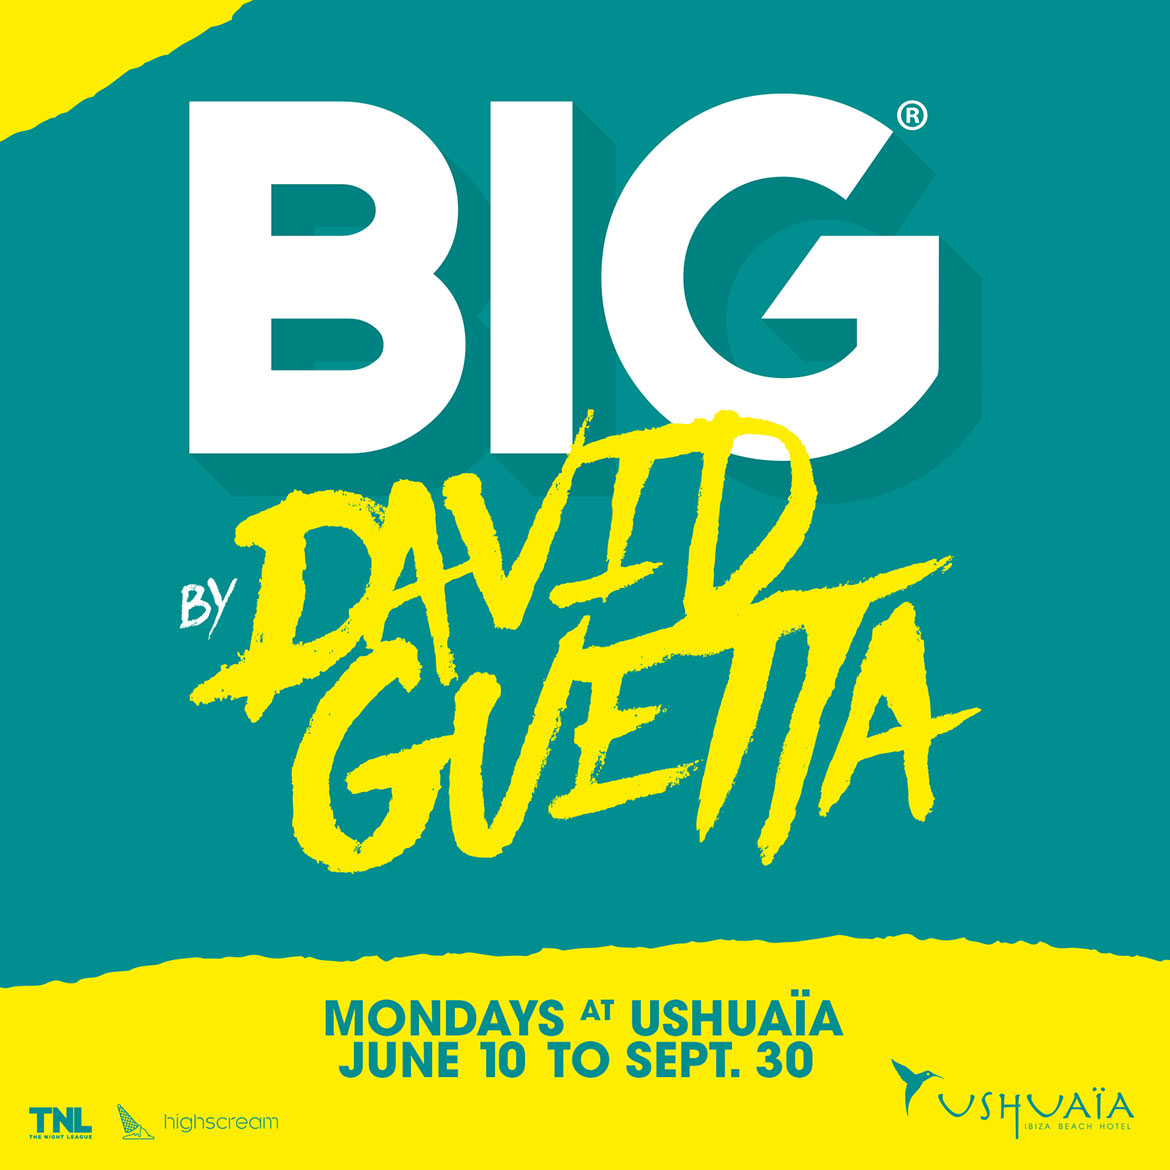 Ushuaia Ibiza Beach Hotel BIG By David Guetta 2019